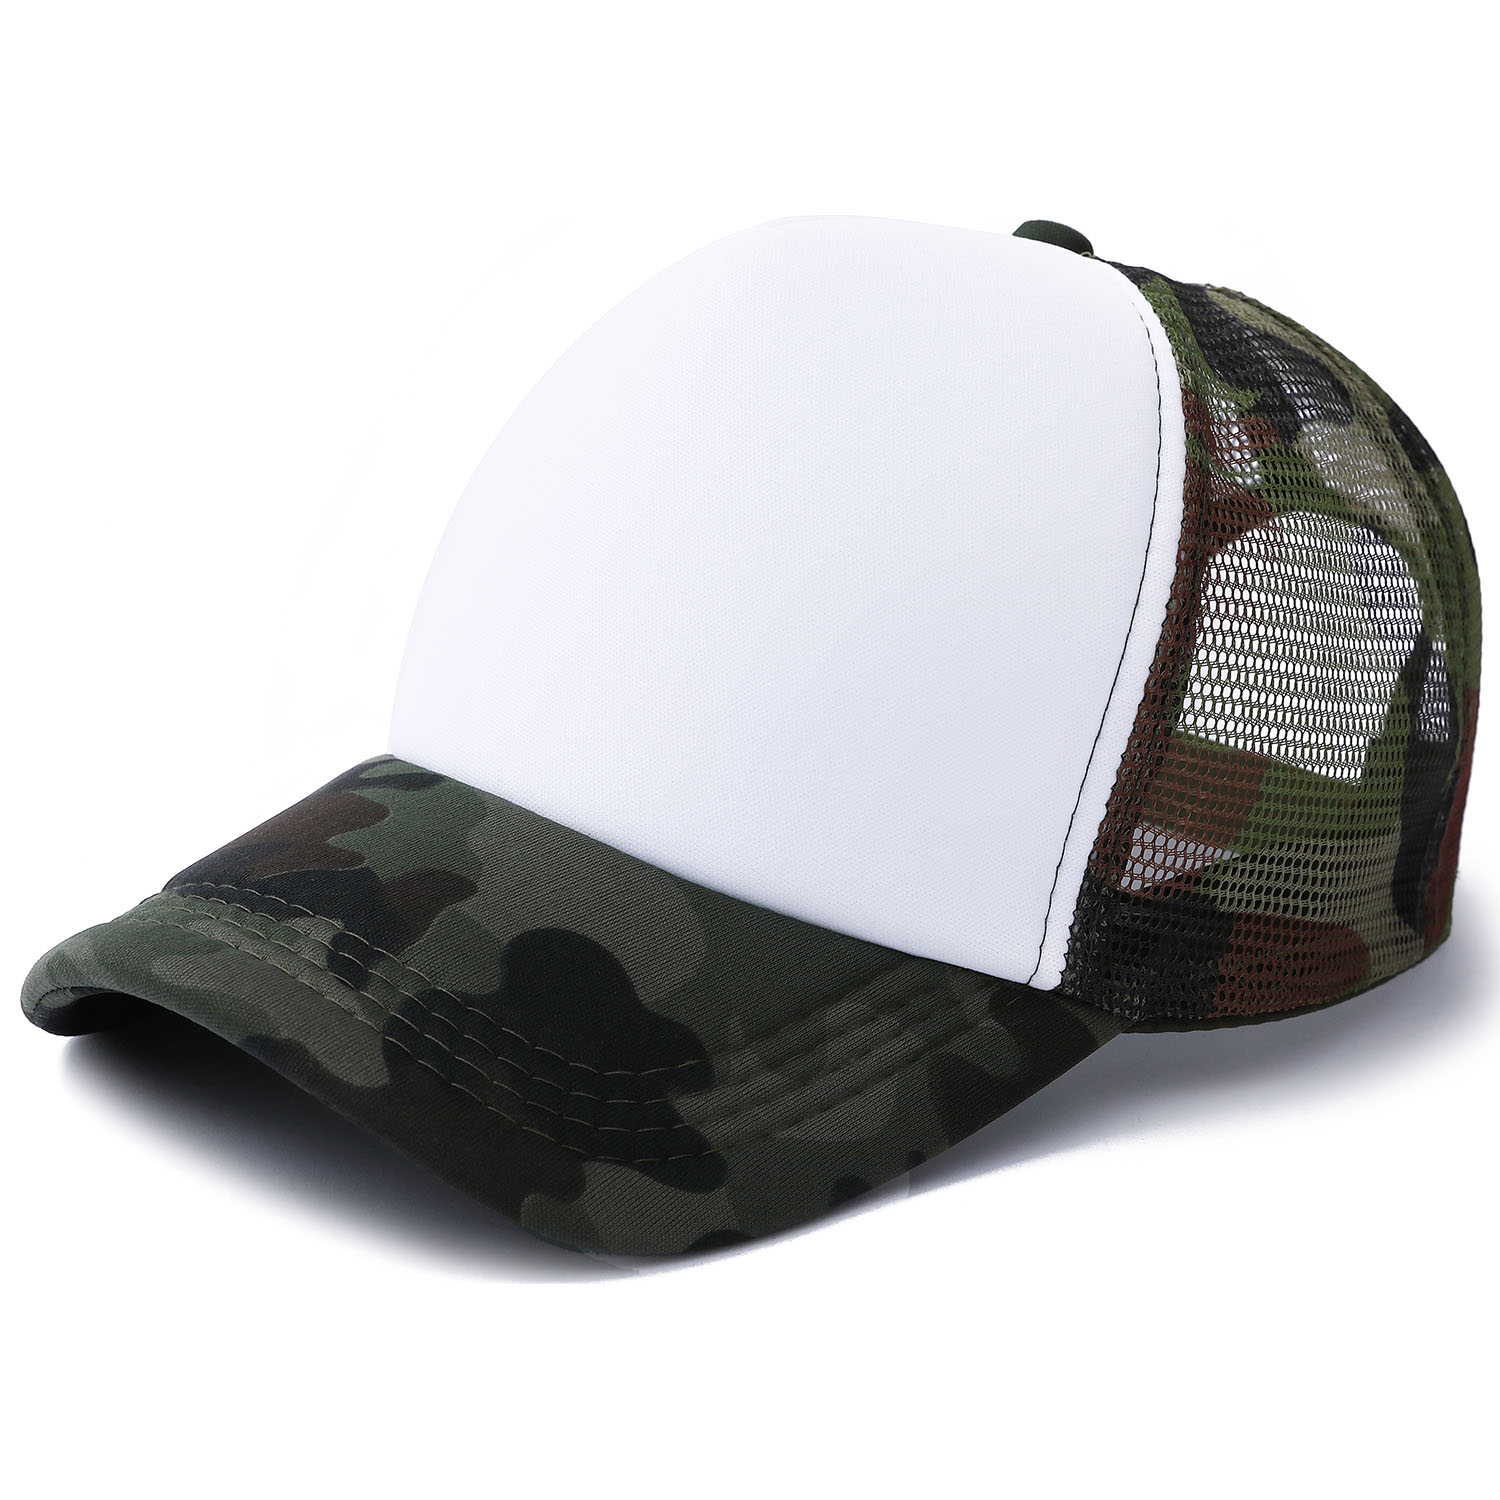 10pcs Camouflage Polyester Mesh Cap Hat for Sublimation Printing